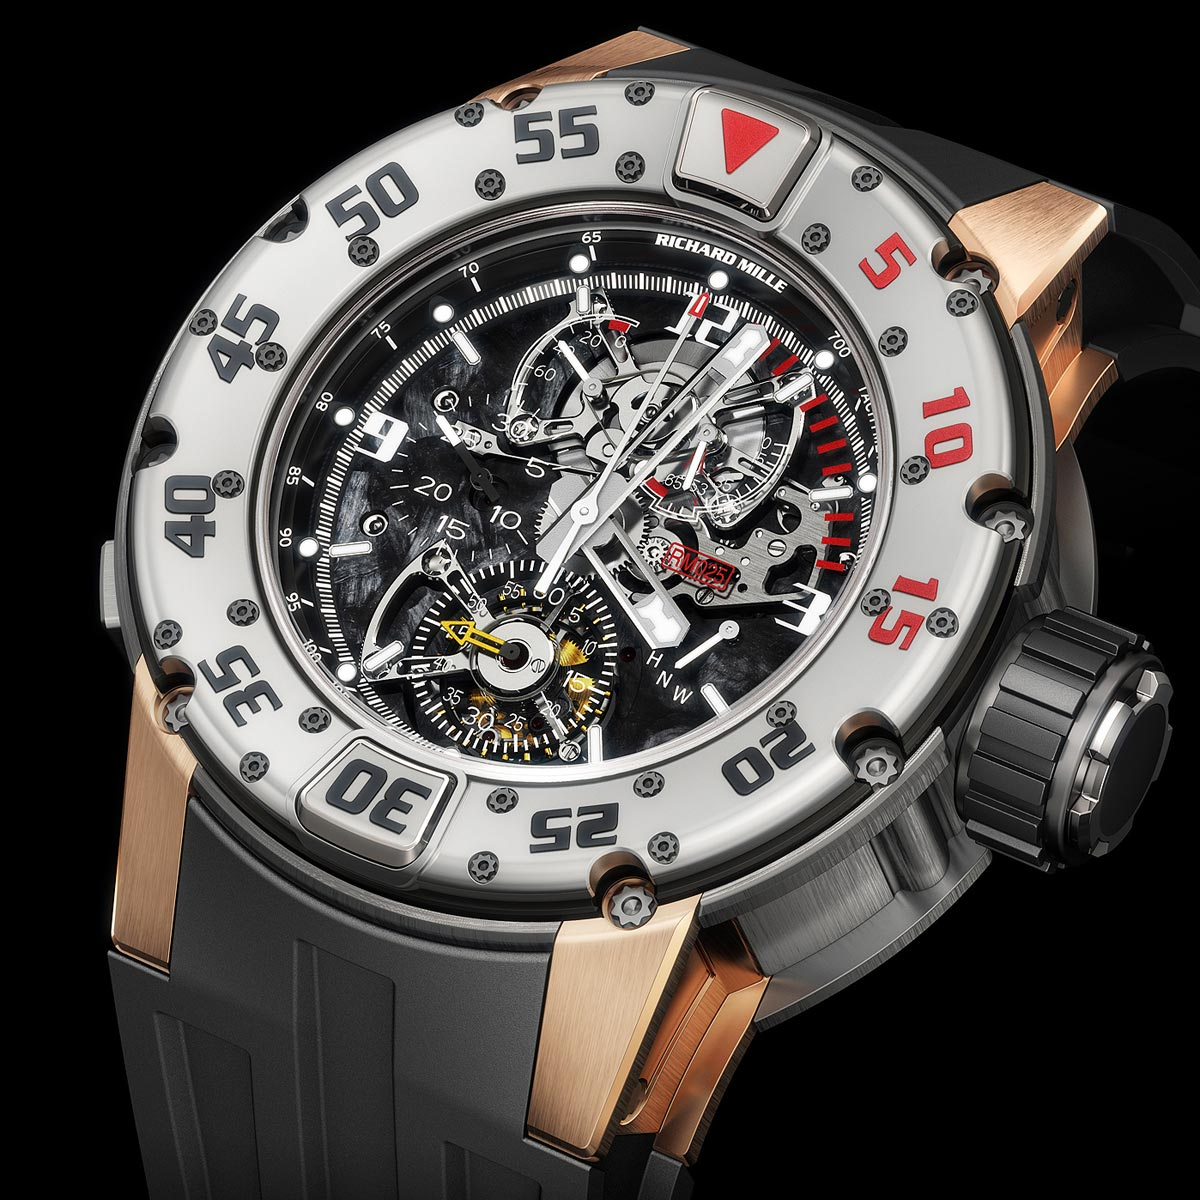 The Watch Quote: Photo - Richard Mille RM 025 Tourbillon Chronograph Diver's Watch